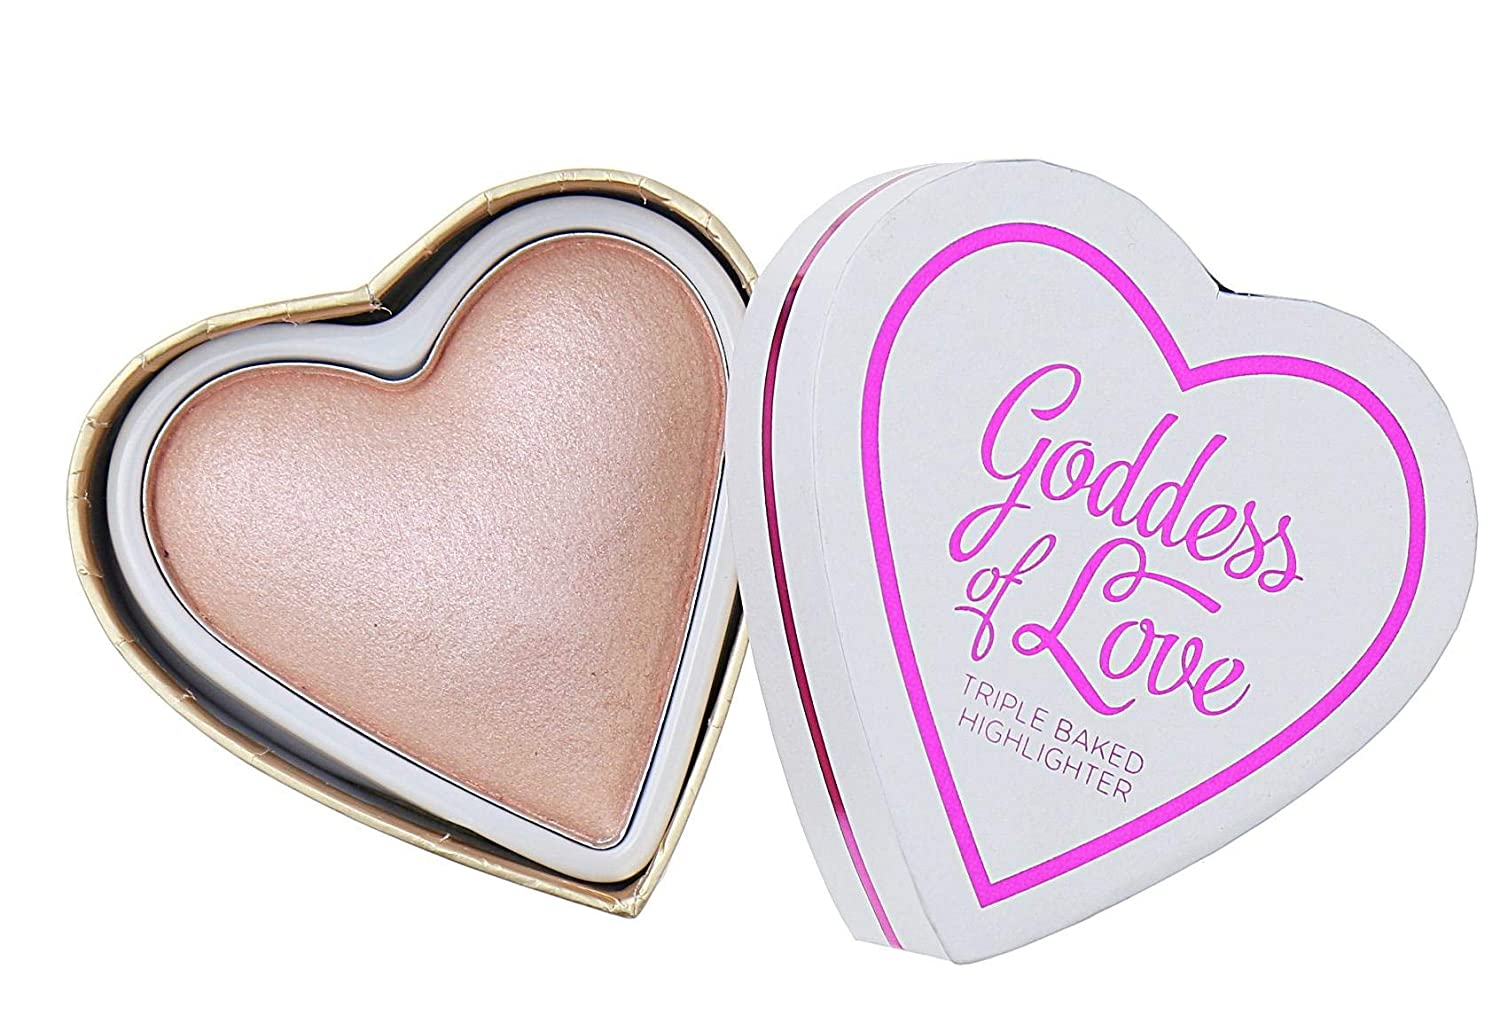 I Heart Makeup Blushing Hearts - Goddess of Love Highlighter: Amazon.co.uk: Beauty